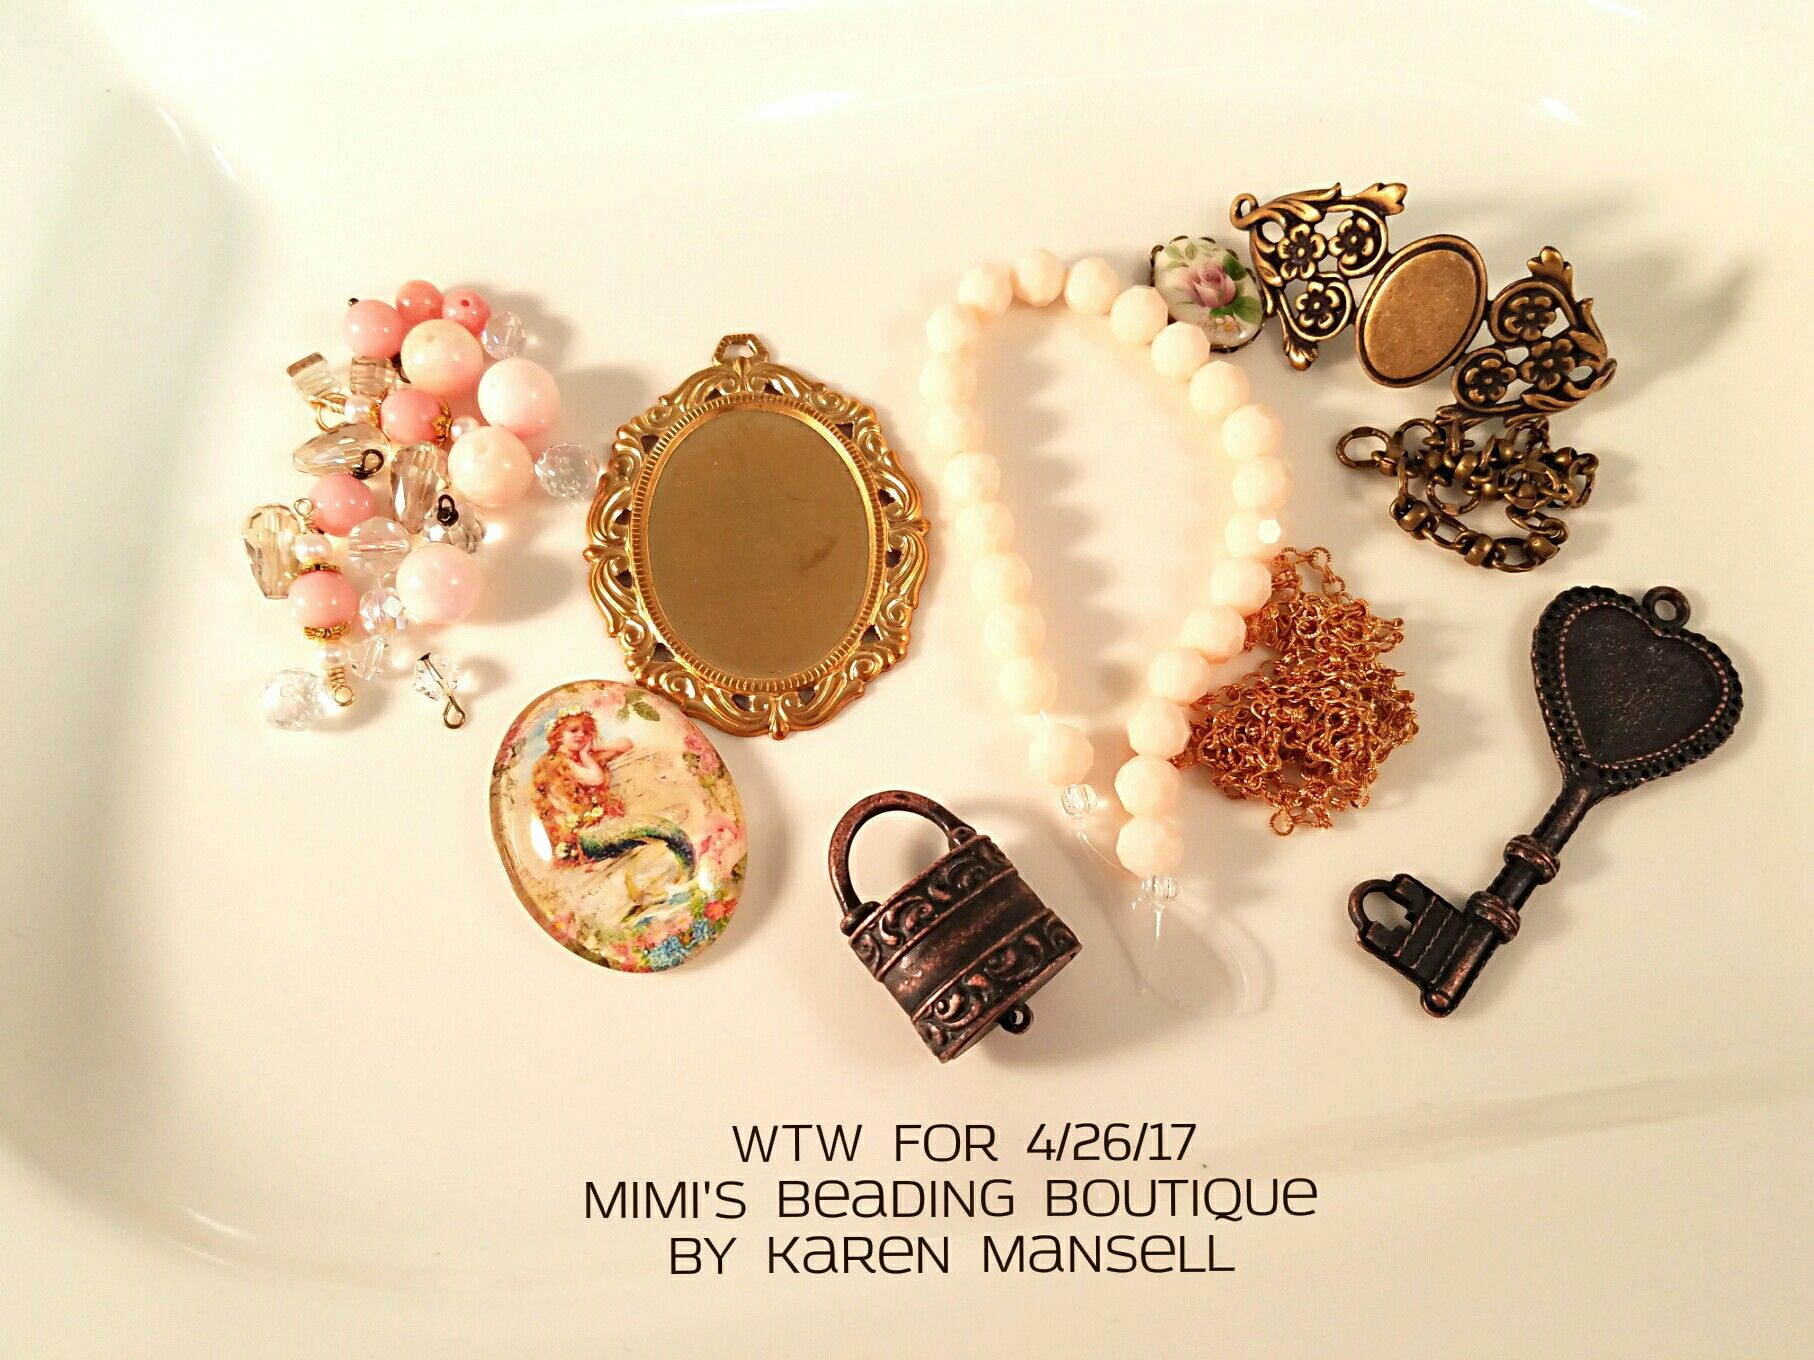 WTW for 4/26/17 Mimi's Beading Boutique  by Karen Mansell